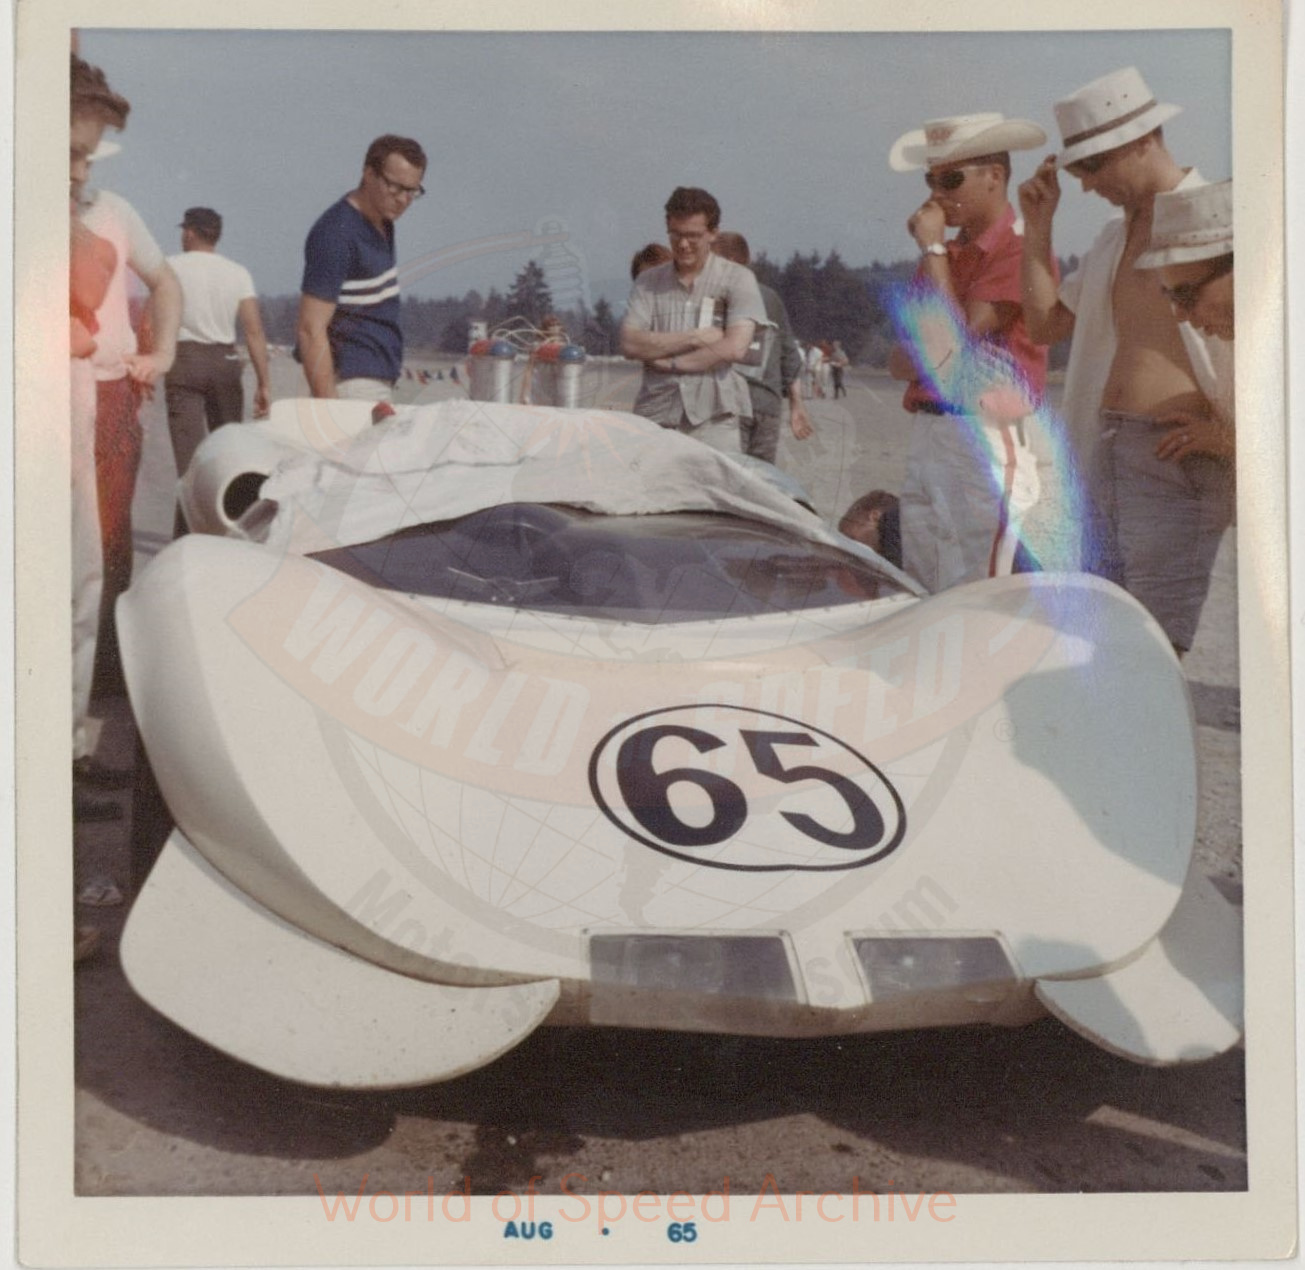 WOS#3786 - GM10 p142: 1965 Can Am race, Seattle International Raceway